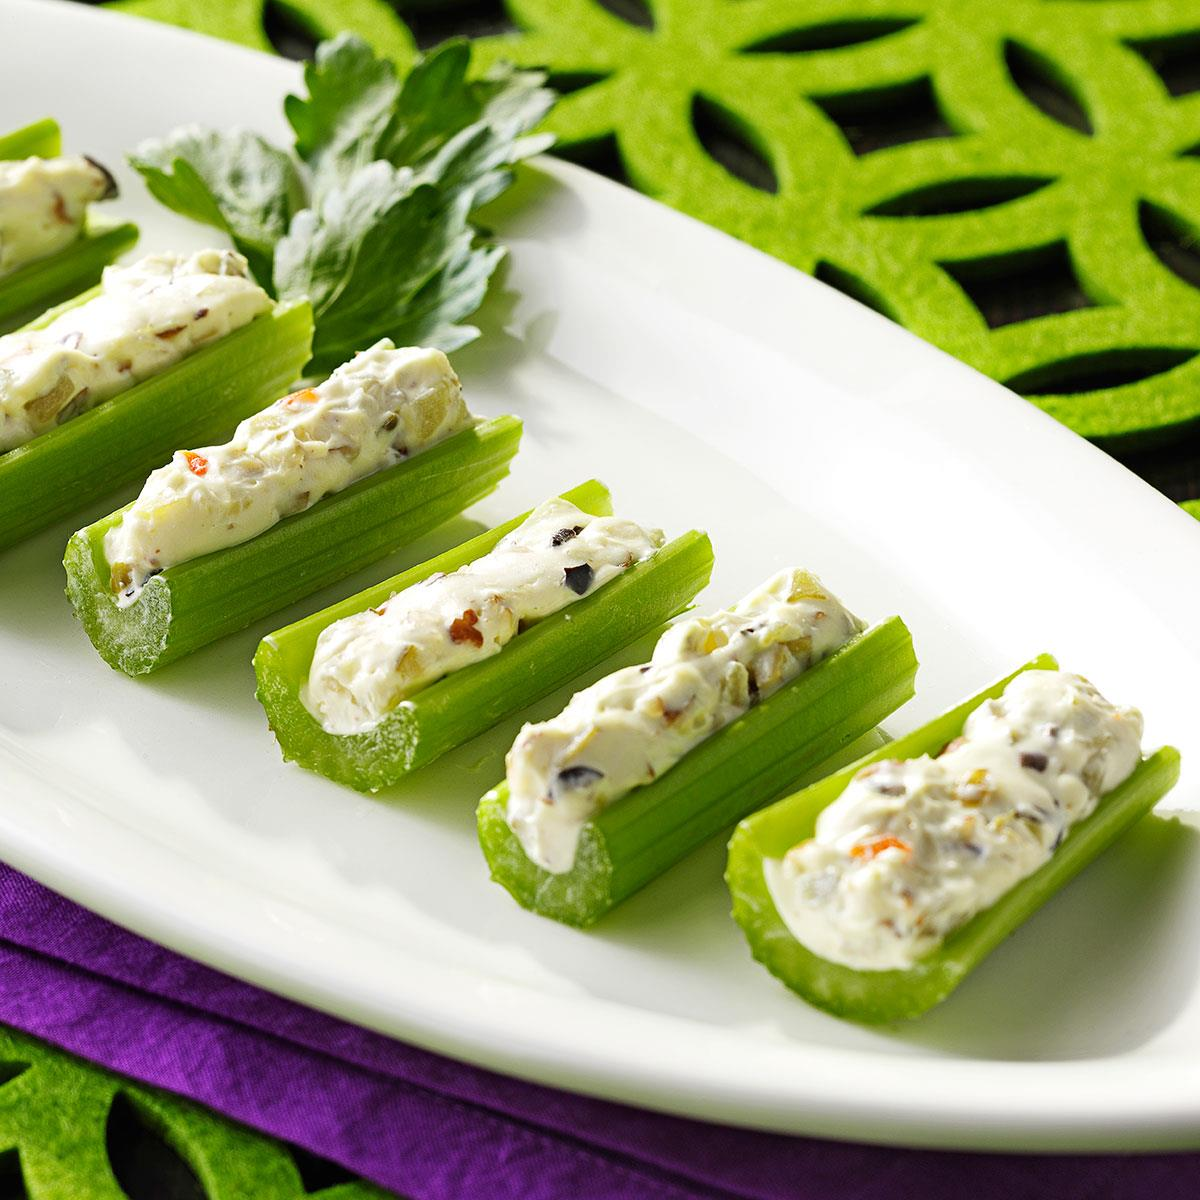 Celery Stuffed With Cream Cheese And Olives